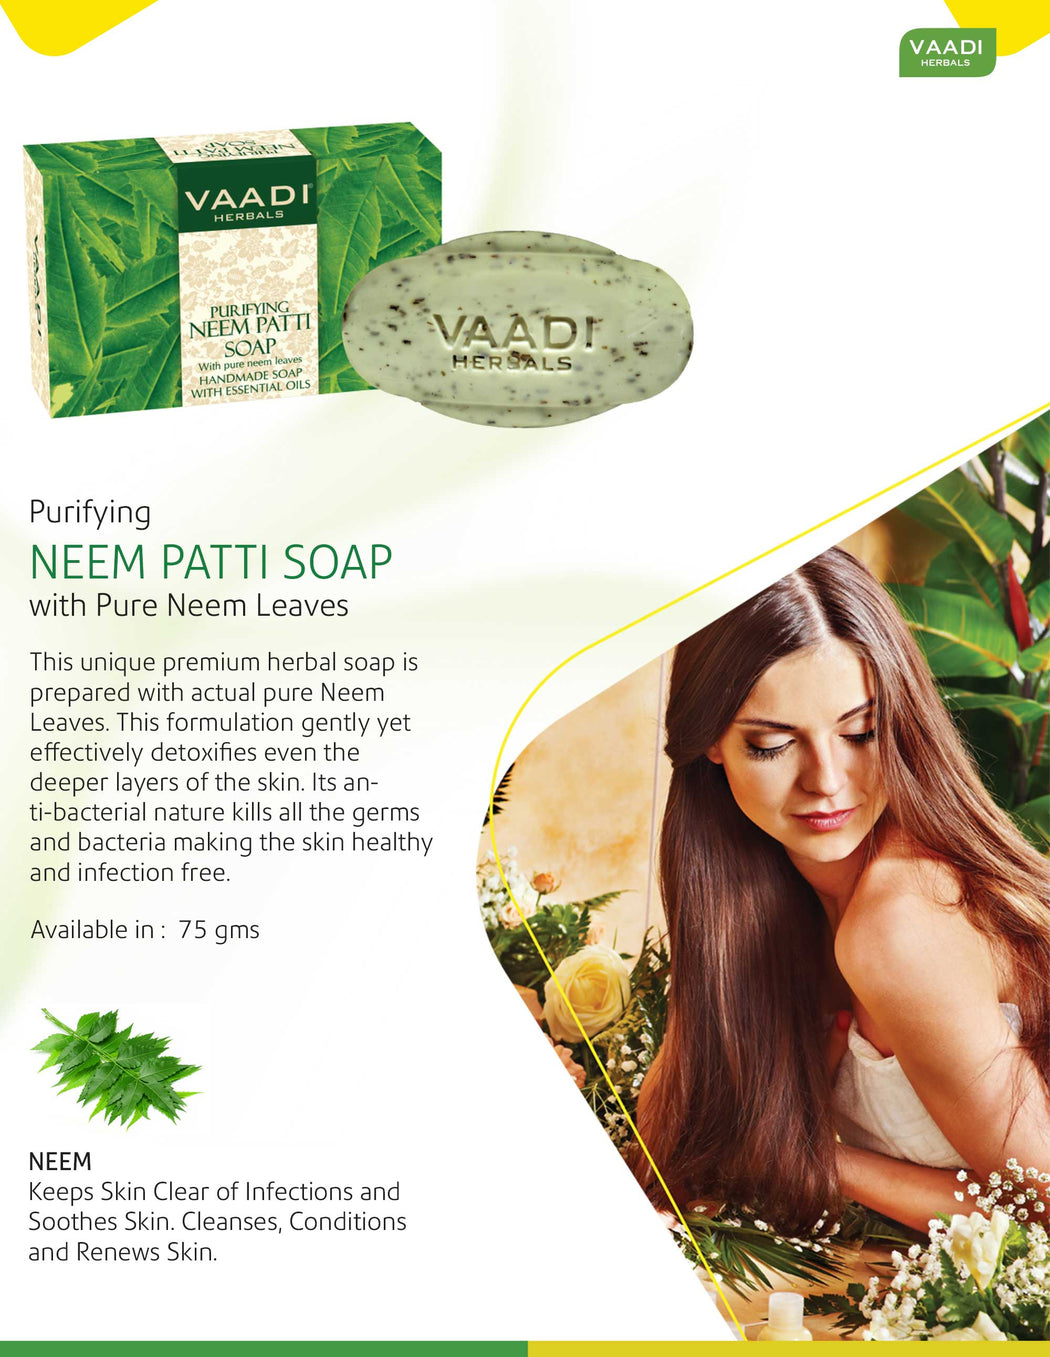 Organic Neem Soap with Pure Neem Leaves - Detoxifies Skin (12 x 75 gms / 2.7 oz)